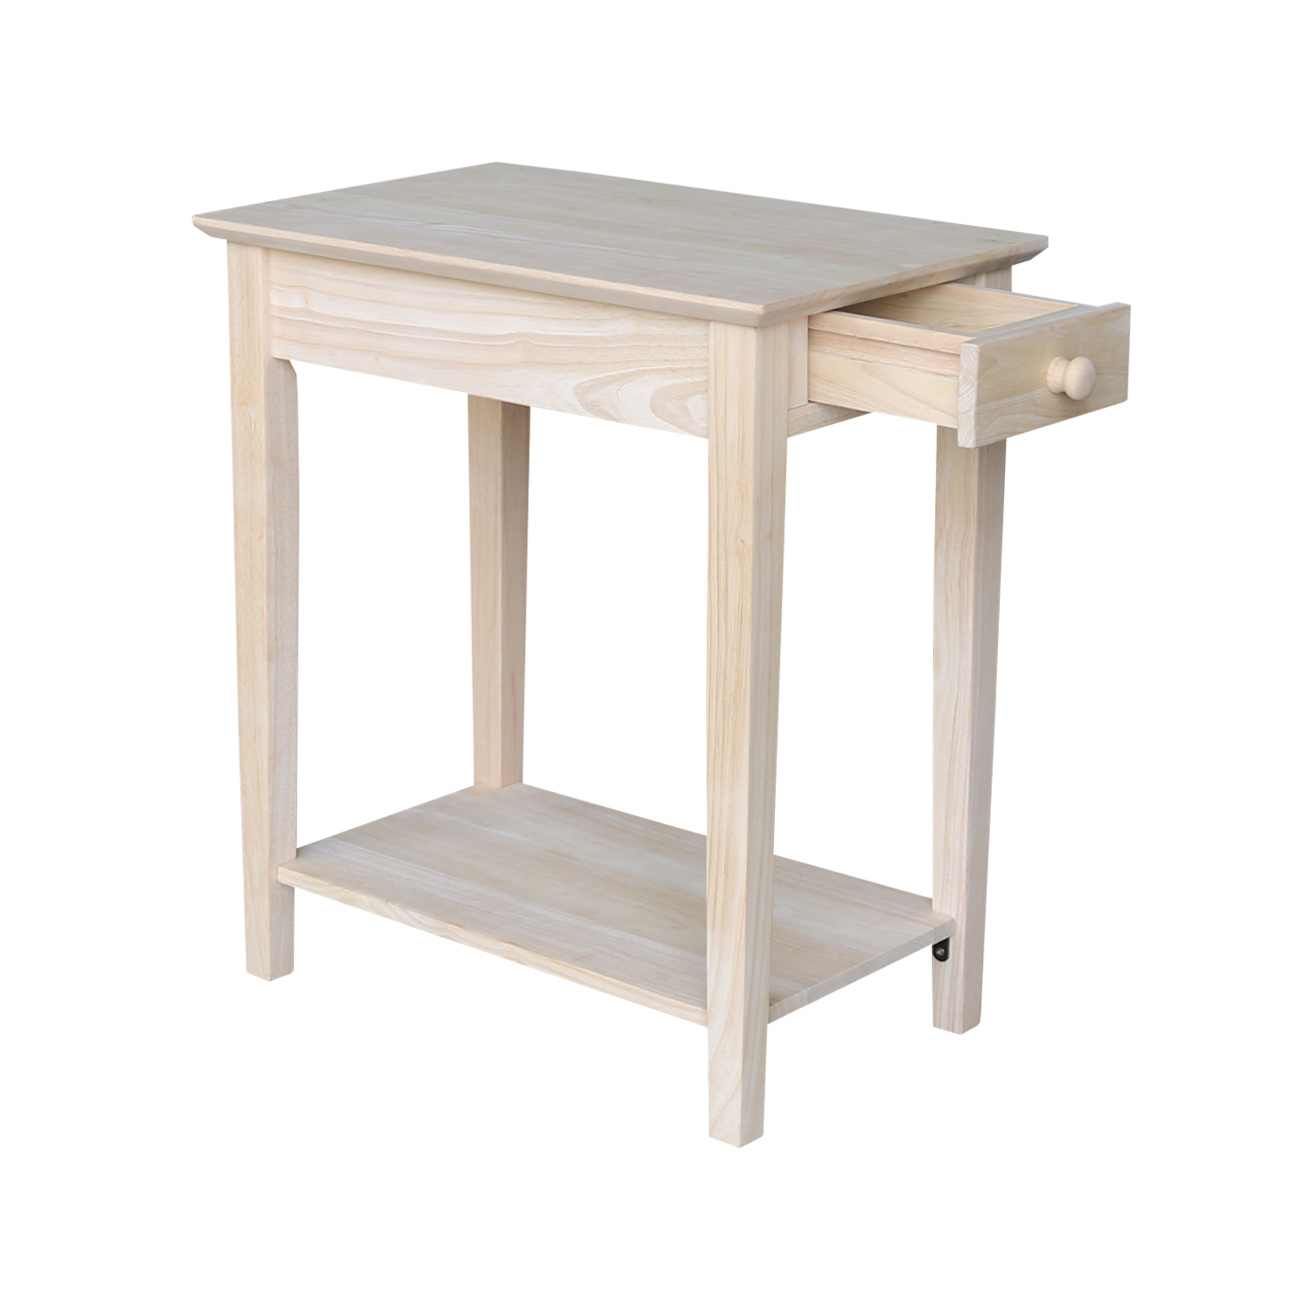 international concepts narrow end table unfinished furniture tables over lamp liberty ocean isle piece dining set diy metal coffee dark brown wood stain bare pine pallet crate